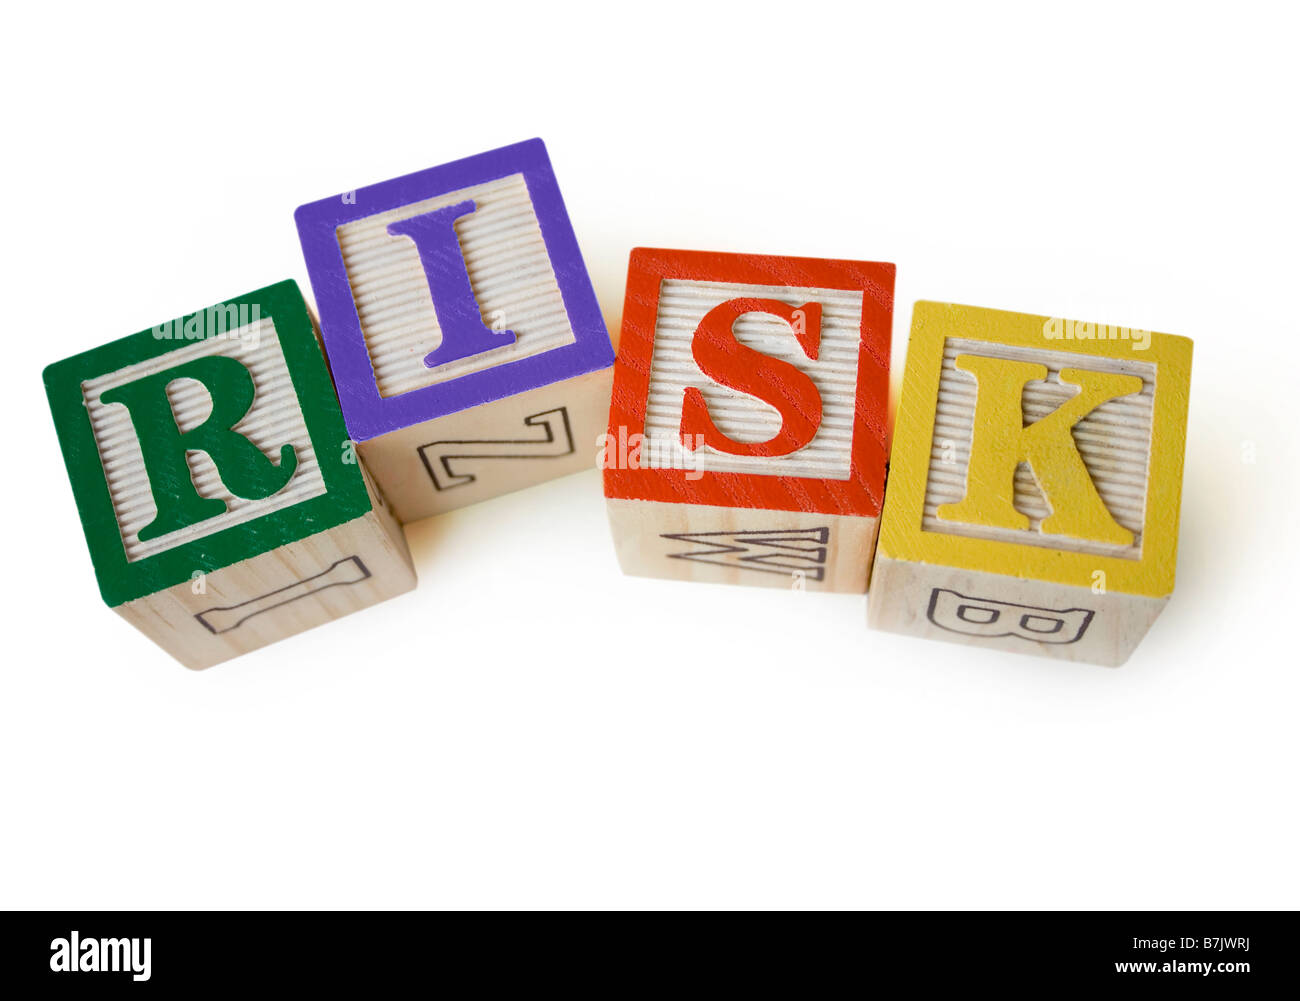 credit crunch financial crisis recession blocks word saying risk - Stock Image